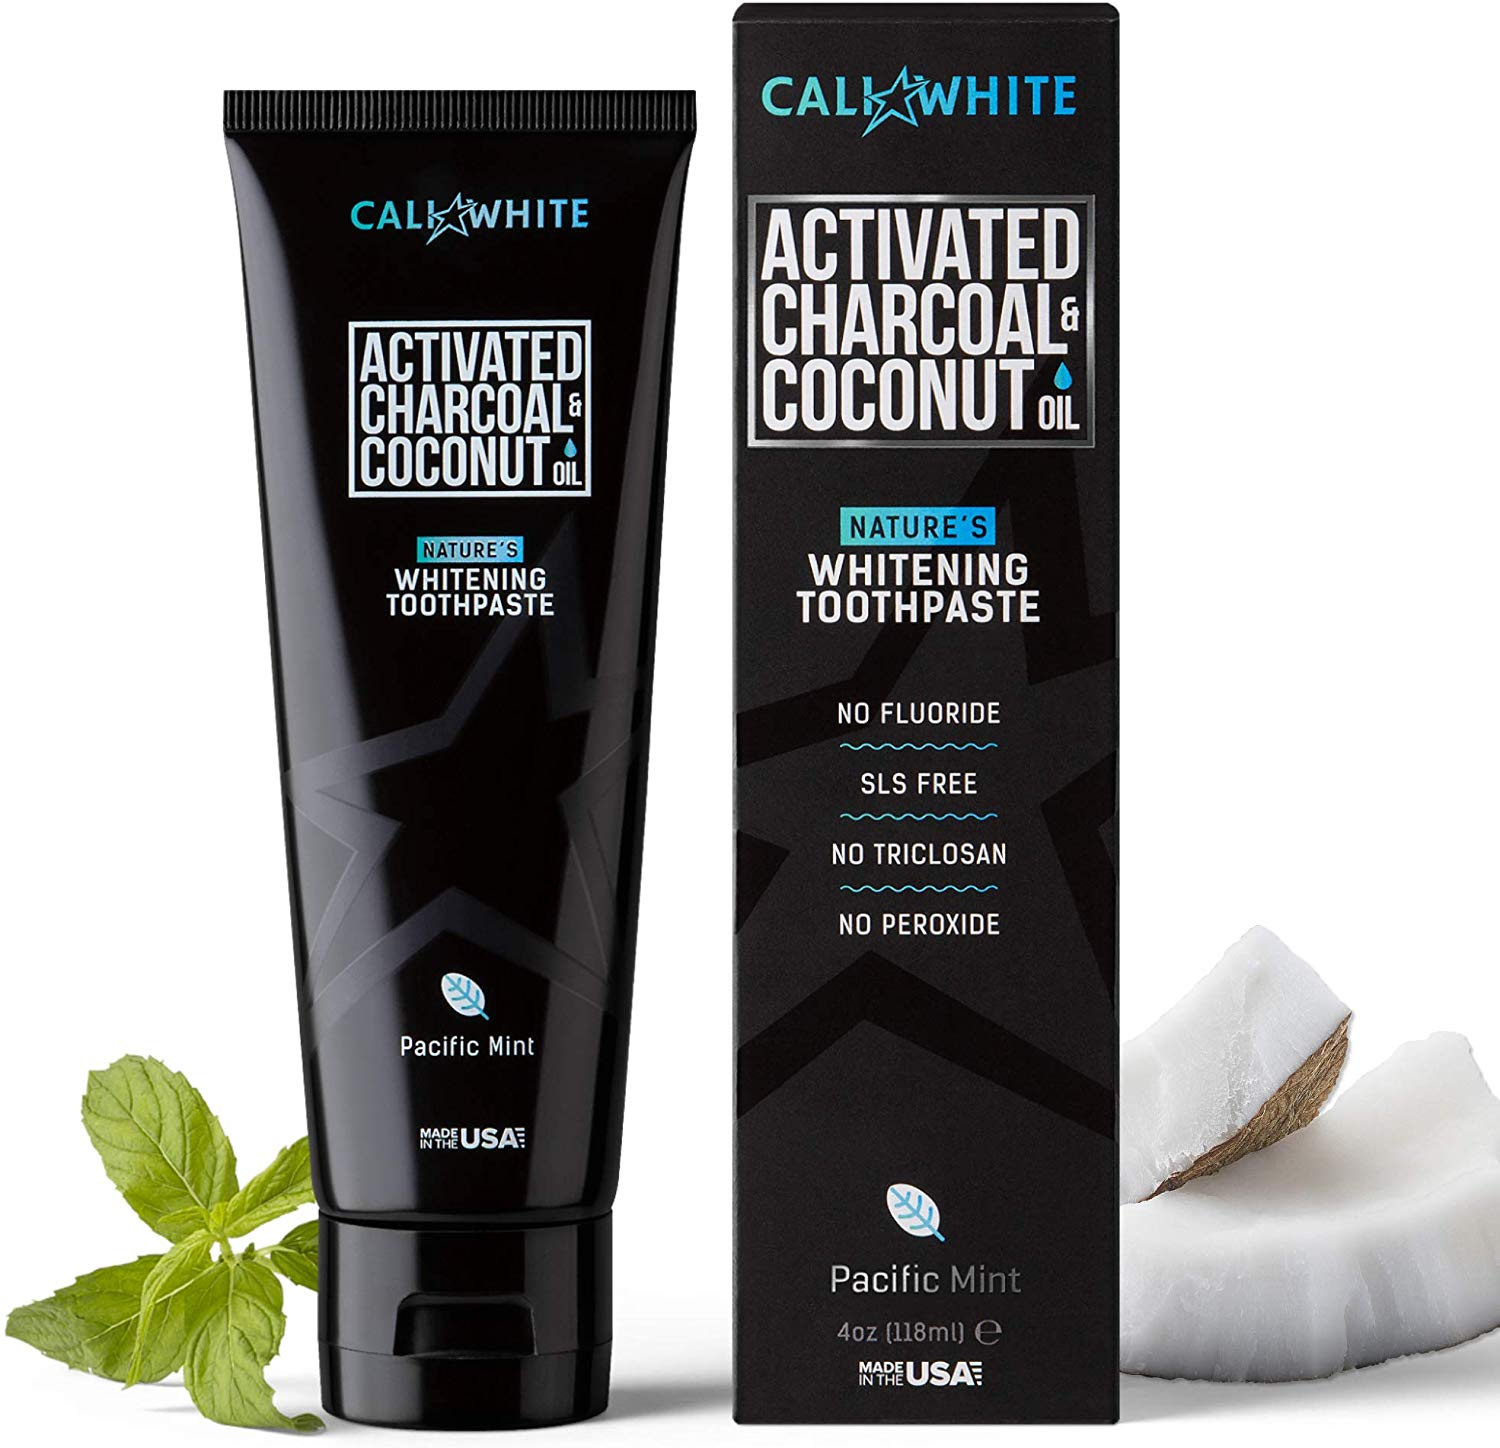 Cali White Activated Charcoal Coconut